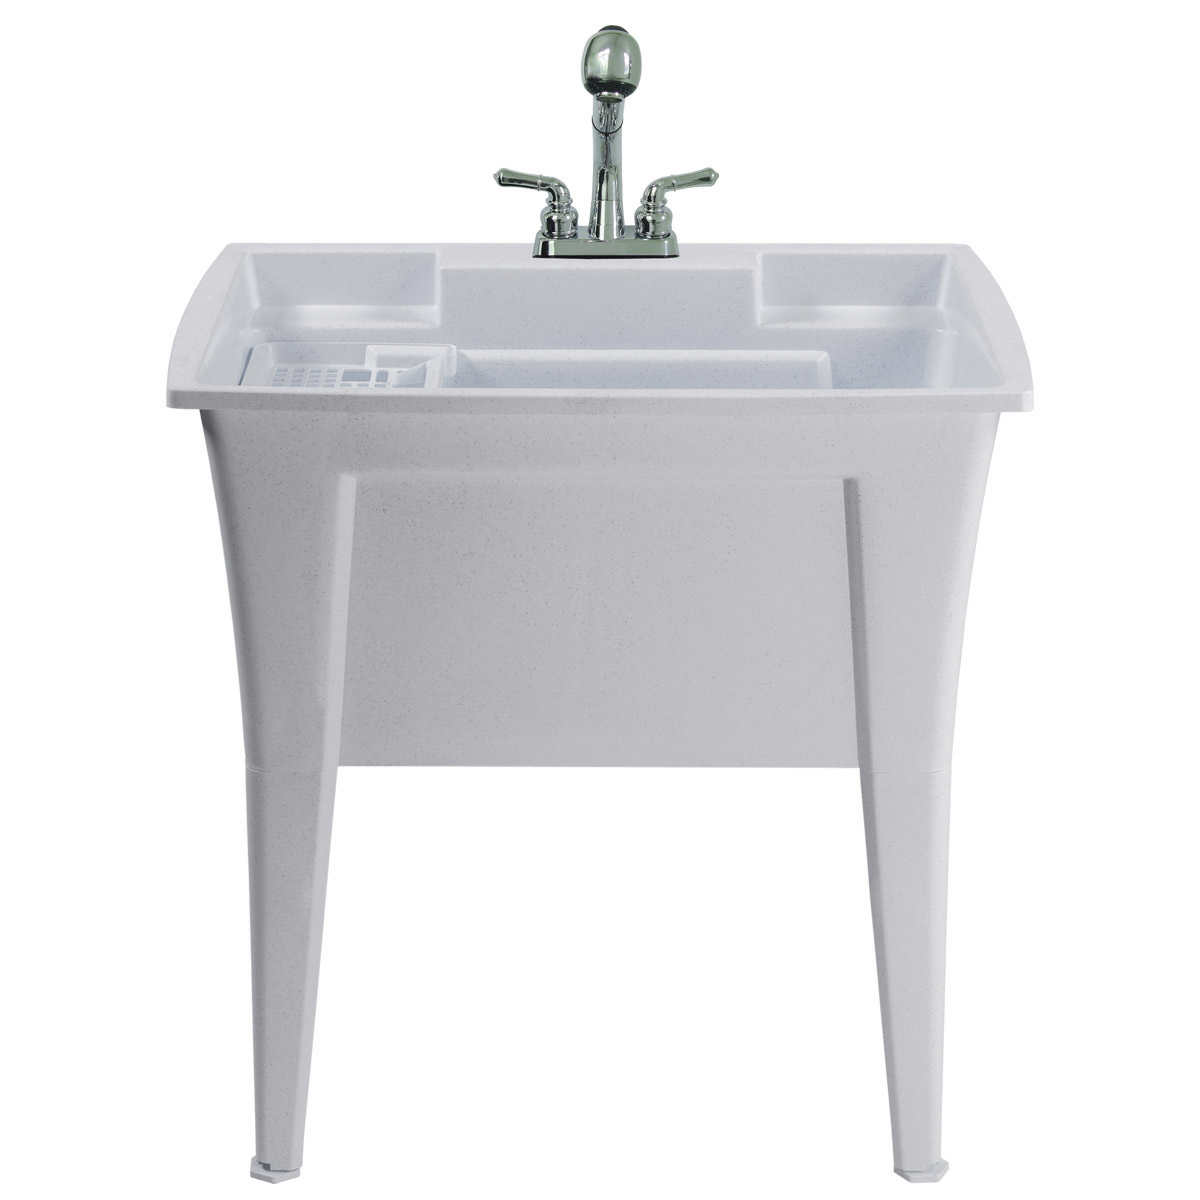 Appollo Genko 32 In Laundry Sink With Faucet